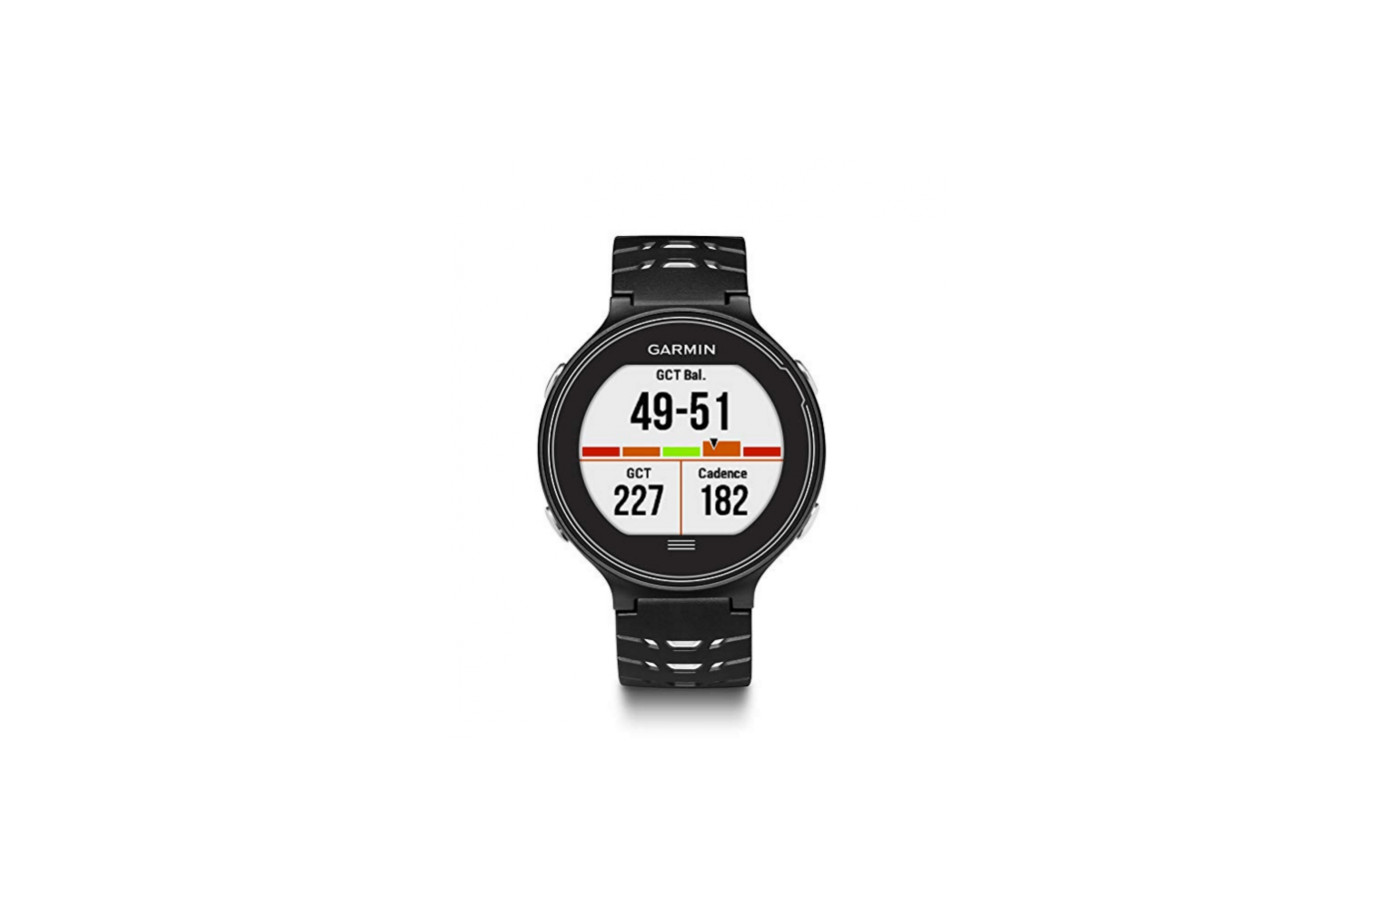 The Forerunner 630 is only available in black